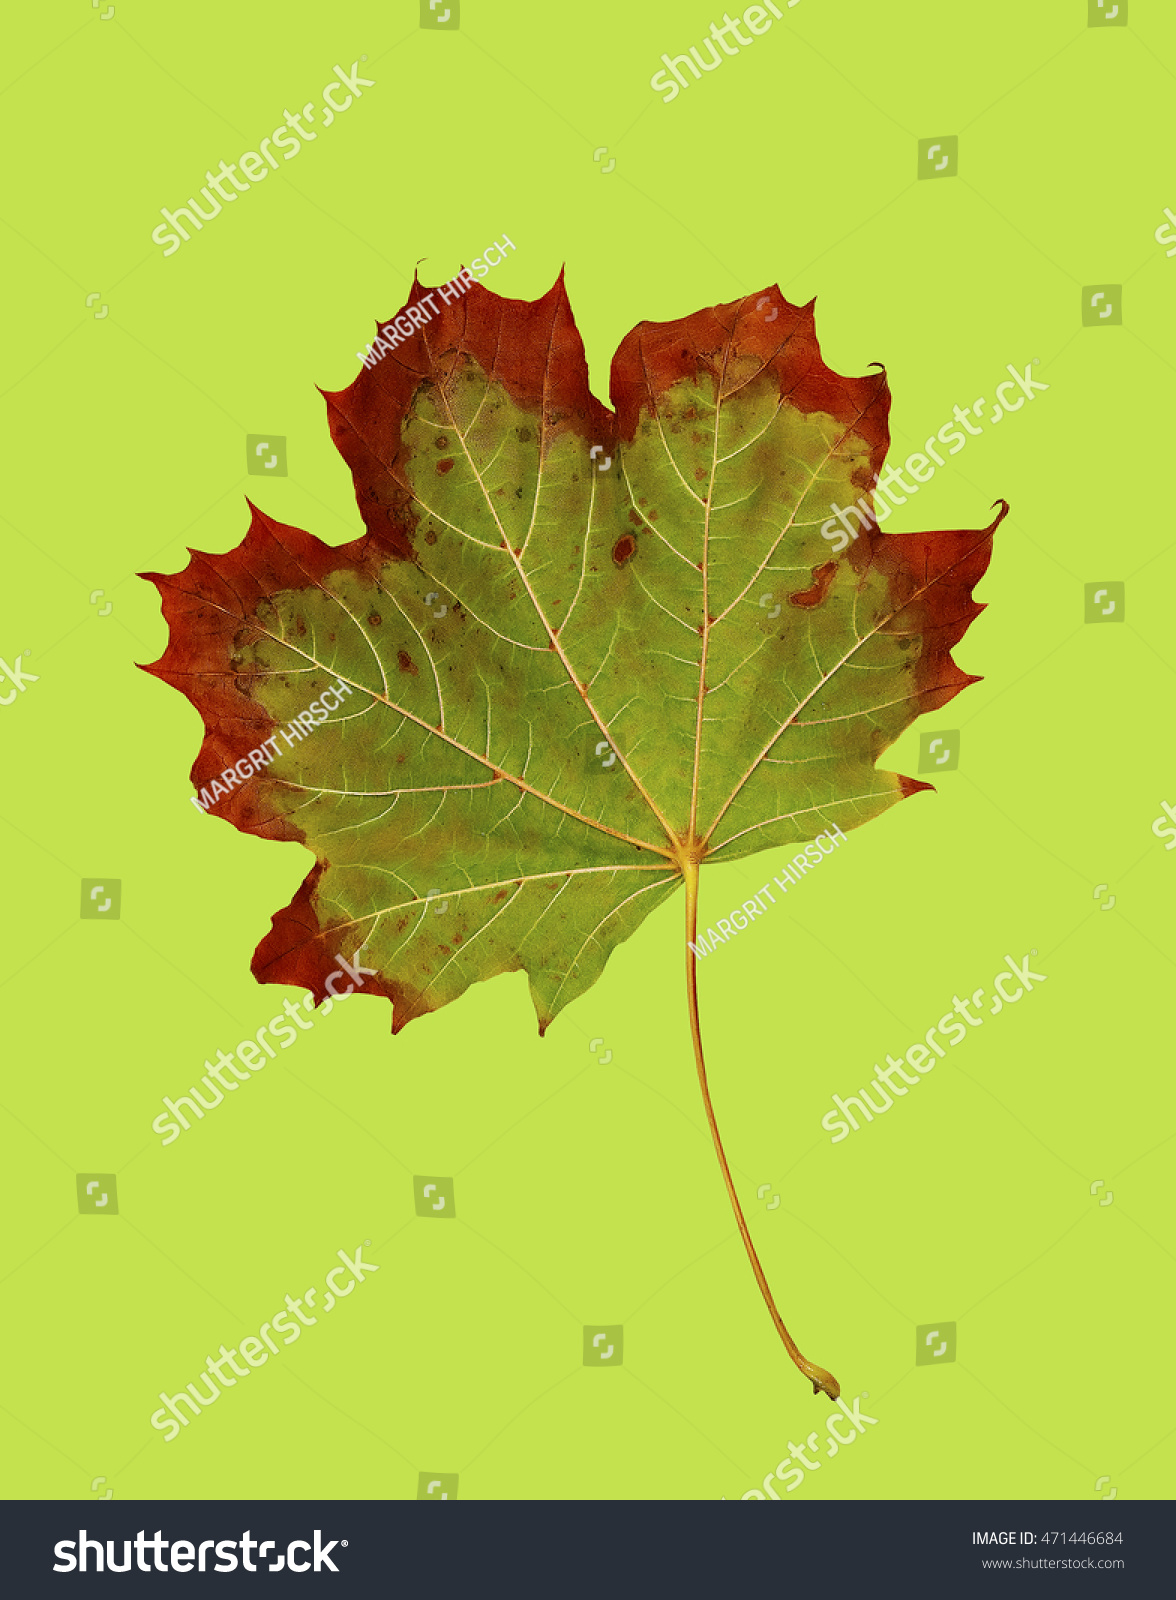 Maple Leaf Changing Colors On Green Stock Photo (Royalty Free ...